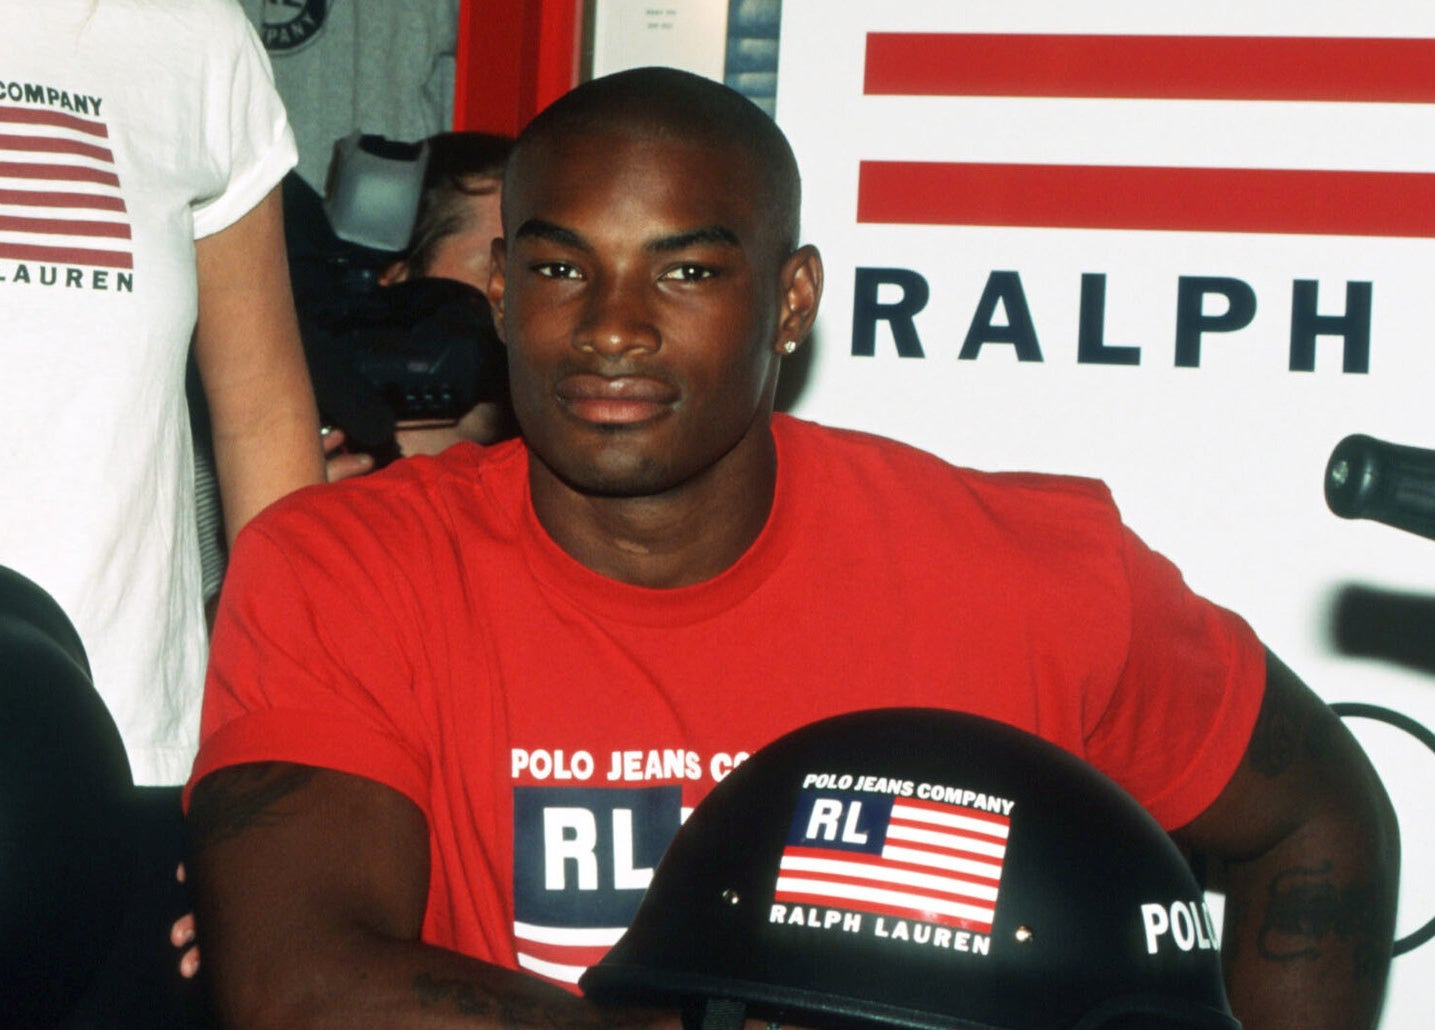 Tyson Beckford in a red Polo Jeans T-shirt at an in-store event for Polo